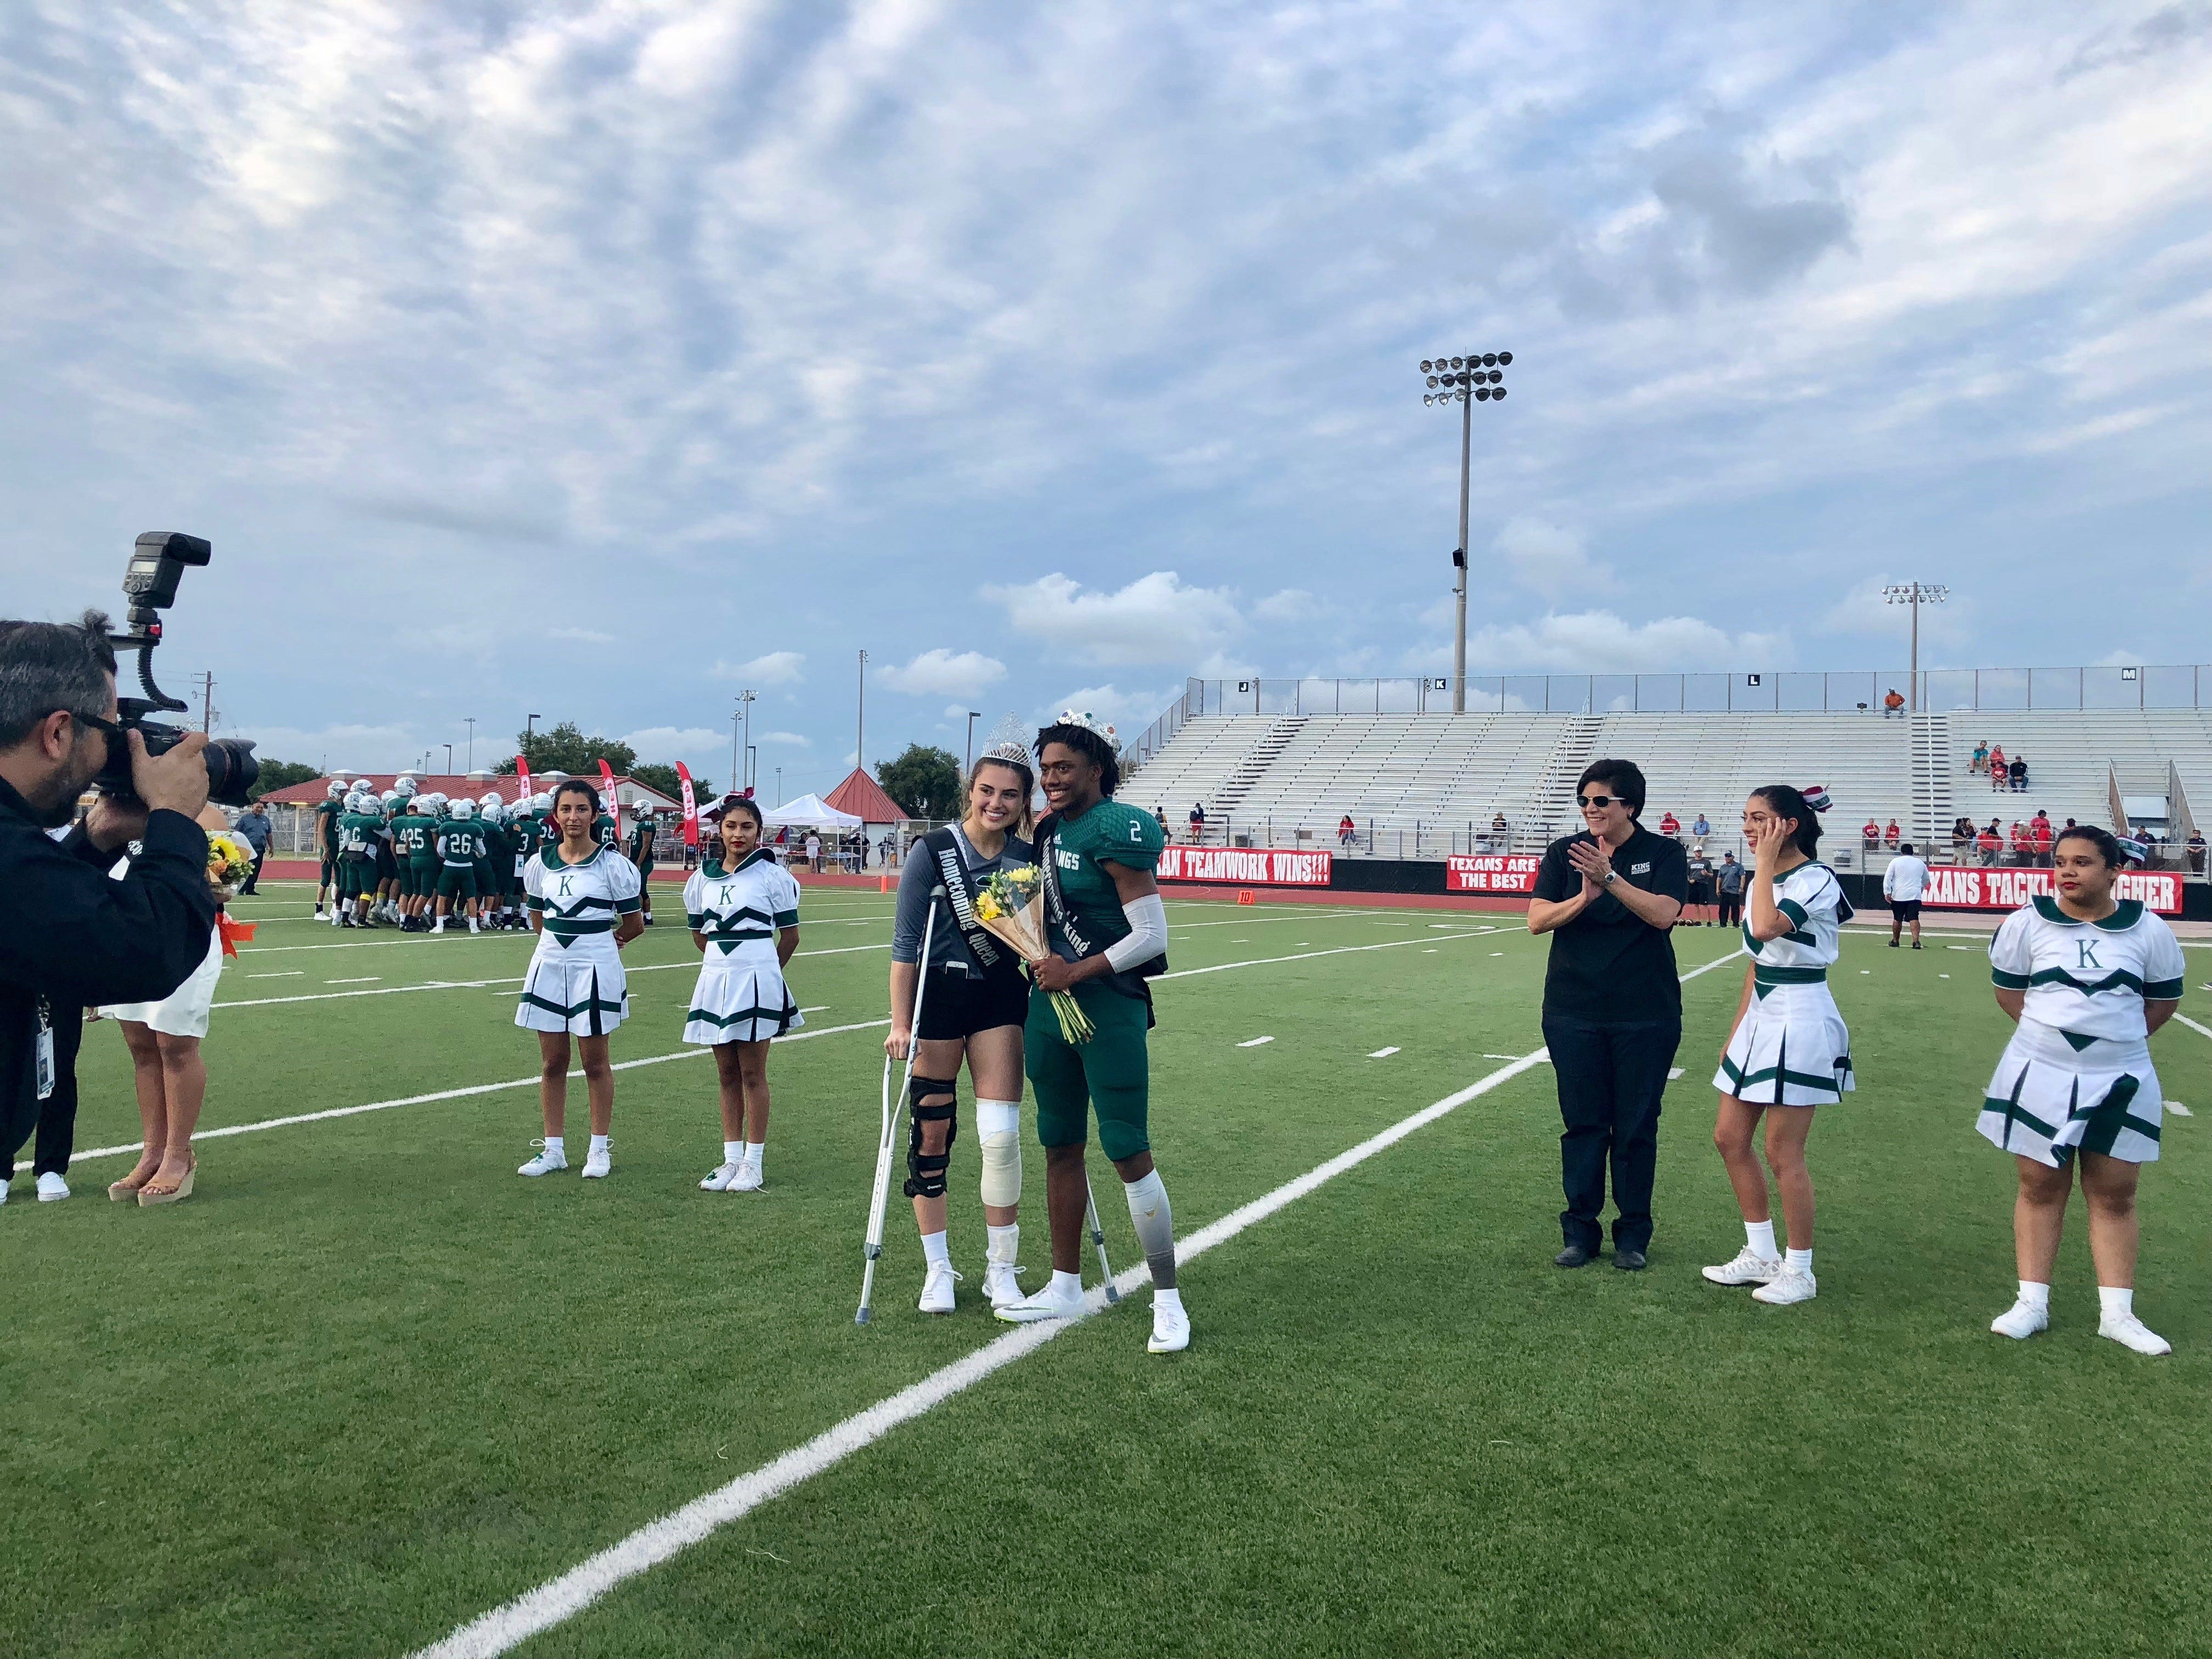 Senior homecoming queen Whitley Elizondo stands beside homecoming king Lestor Sabsook after injuring her knee at a volleyball game.